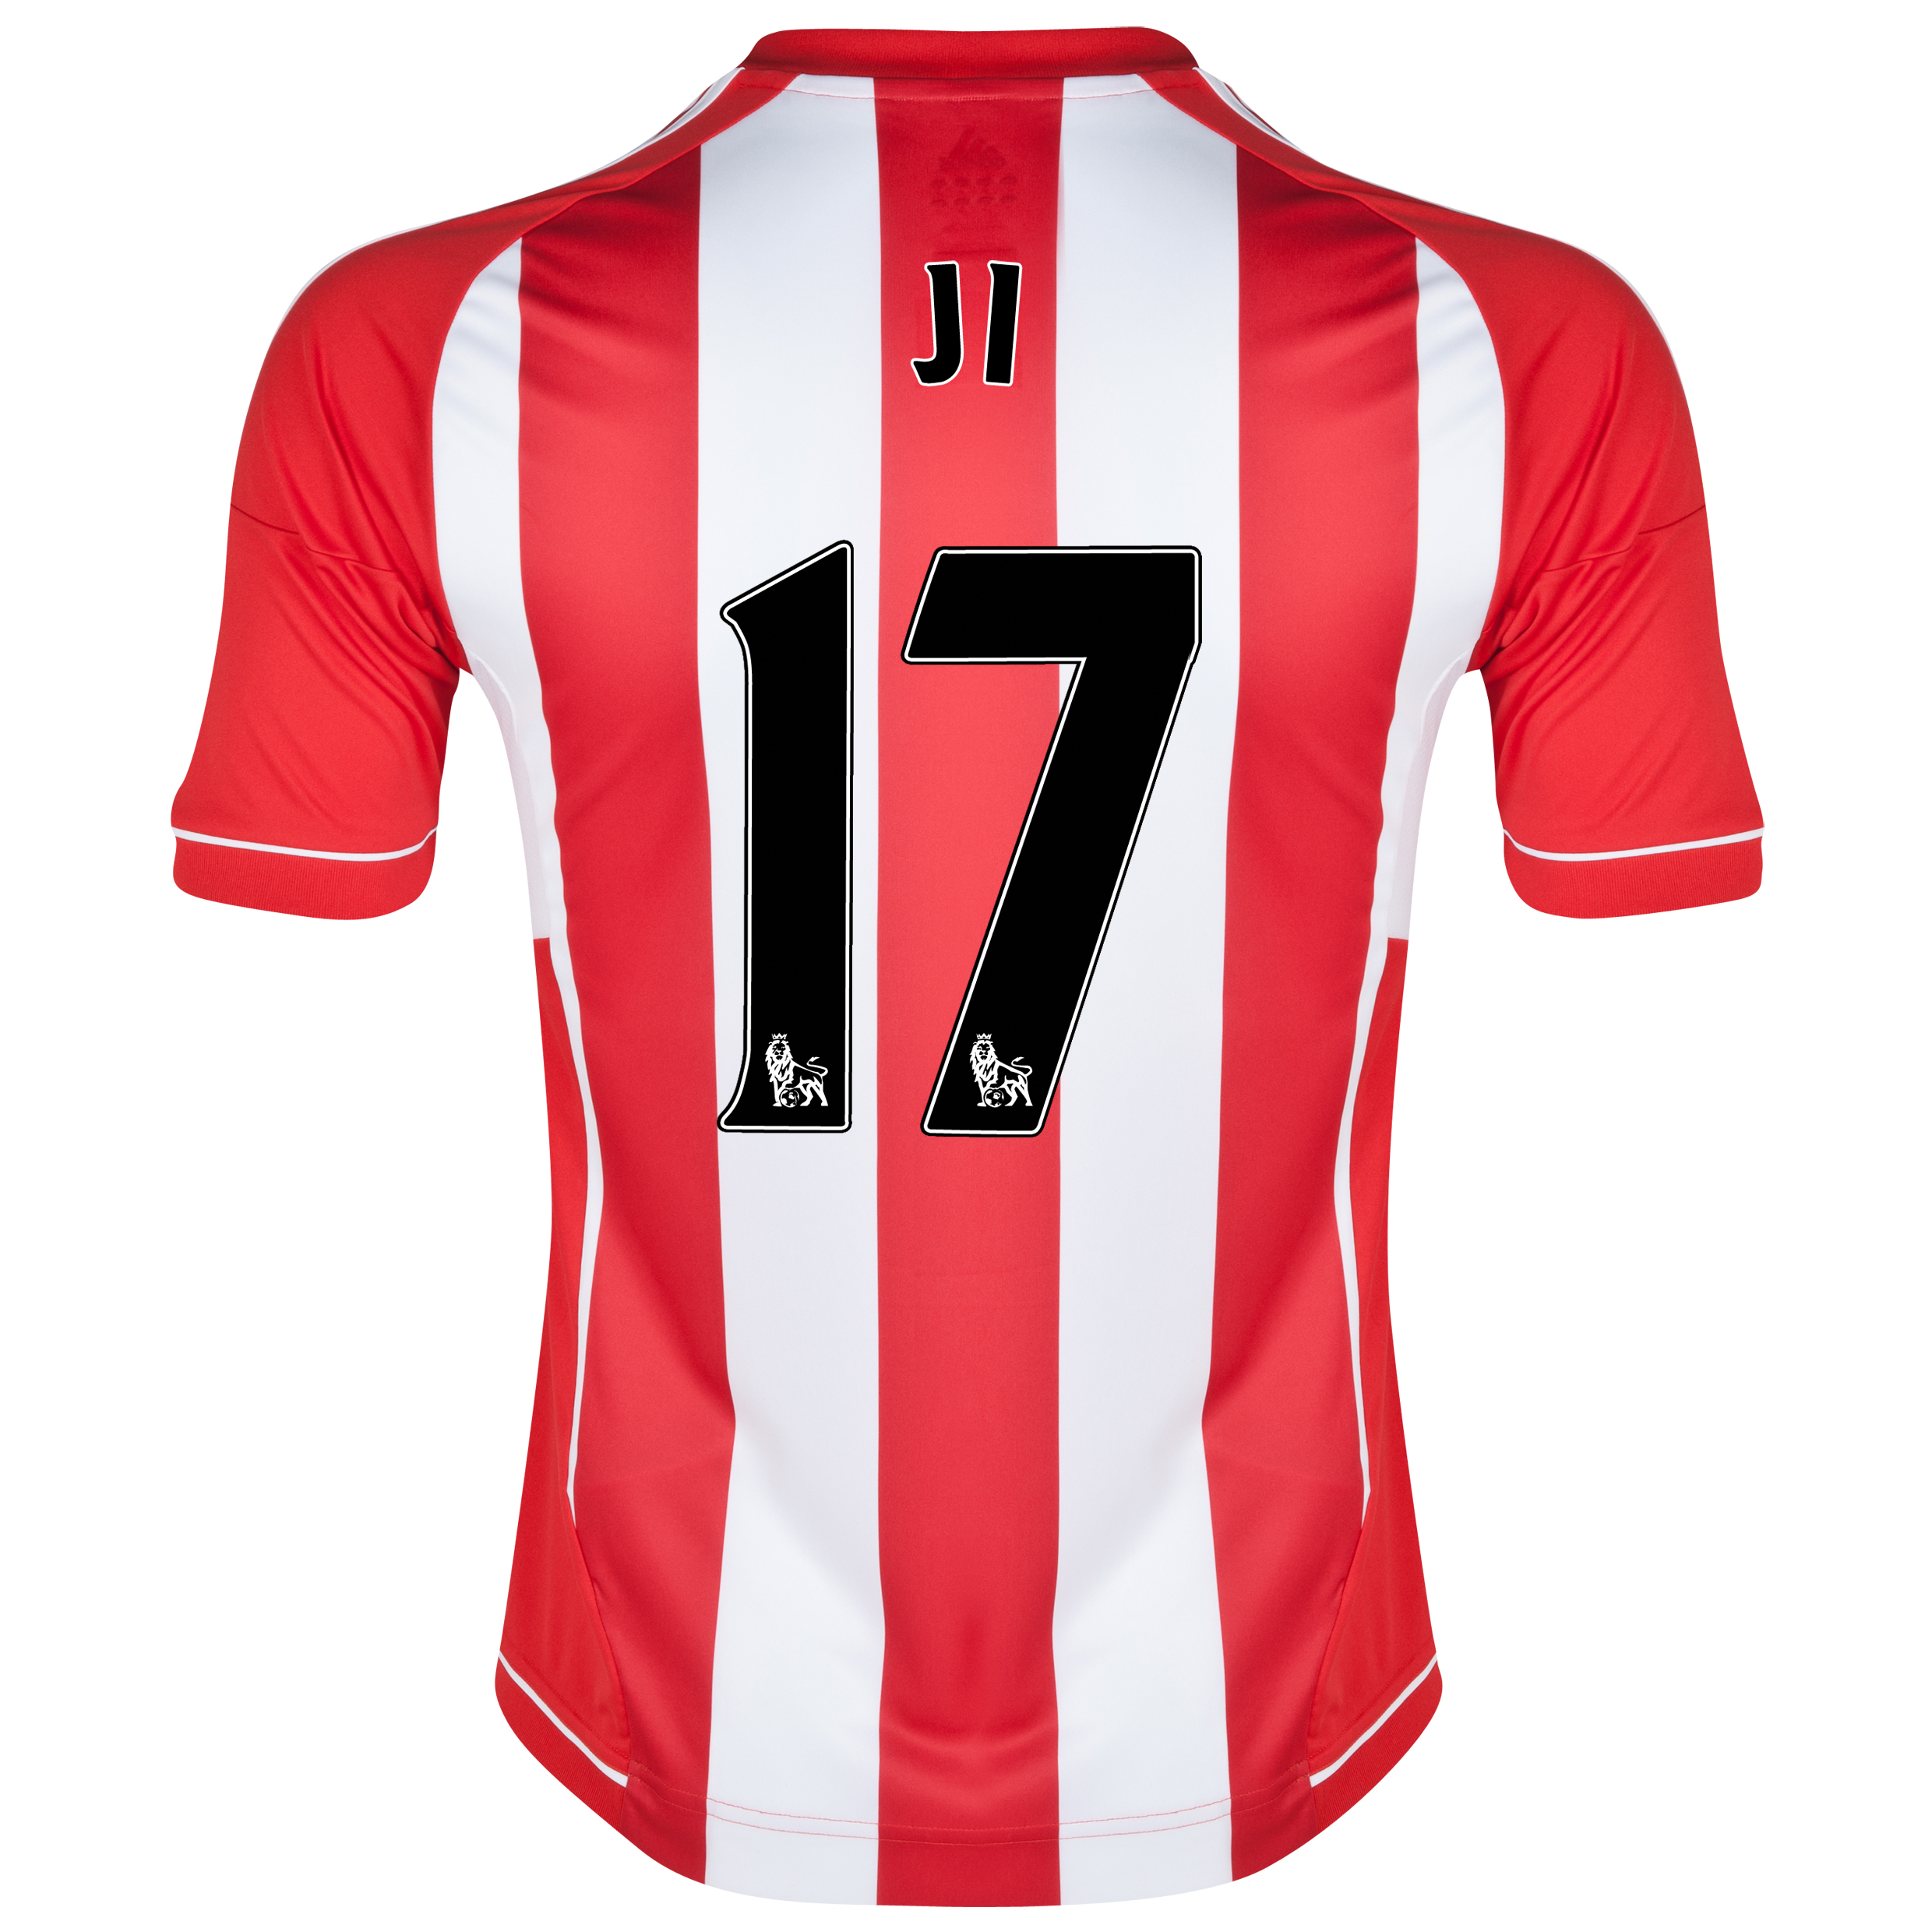 Sunderland Home Shirt 2012/13 with Ji 17 printing